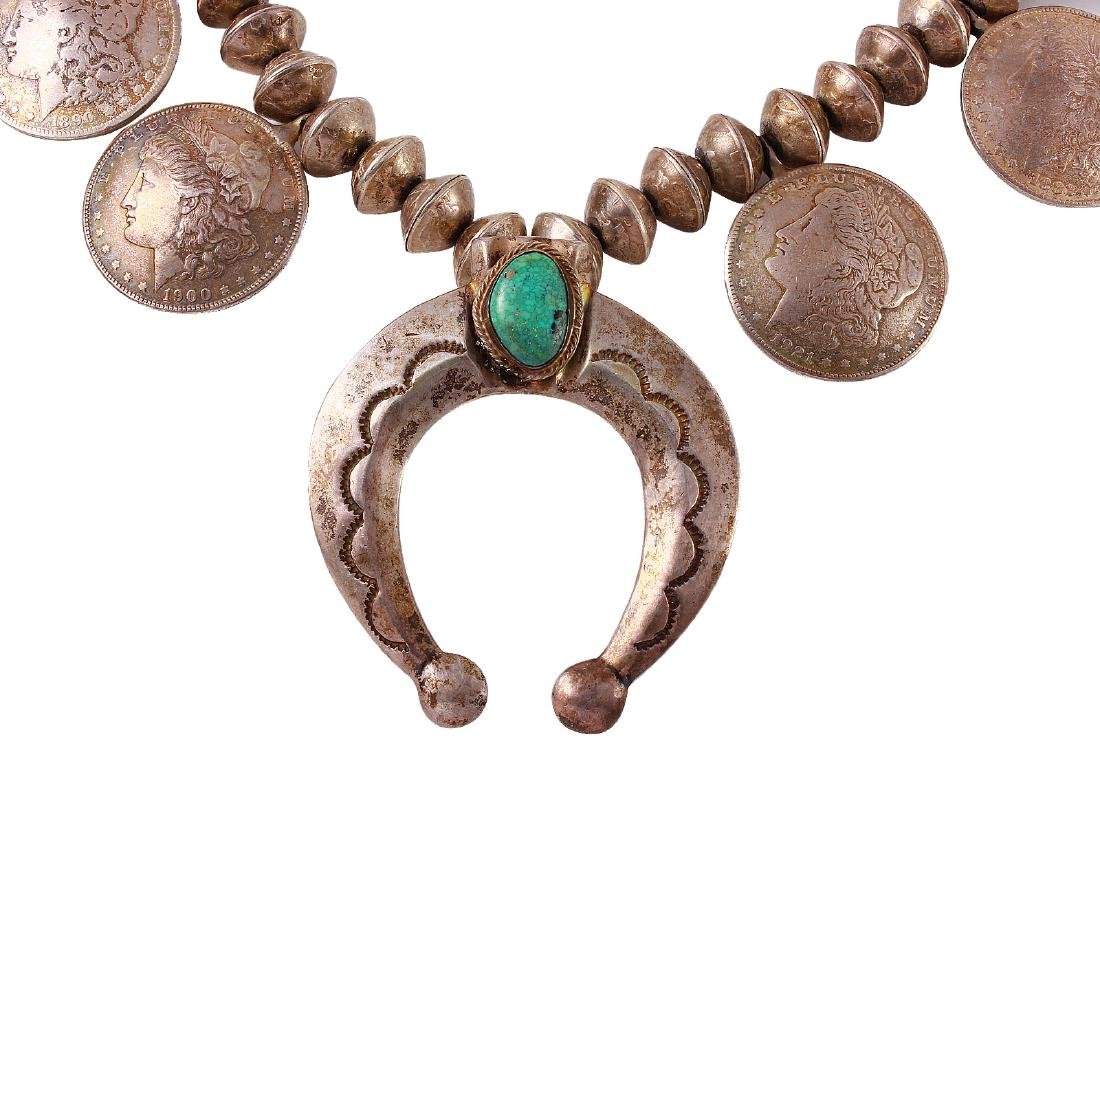 Handmade Coin Sterling Silver Navajo Turquoise Necklace - 6